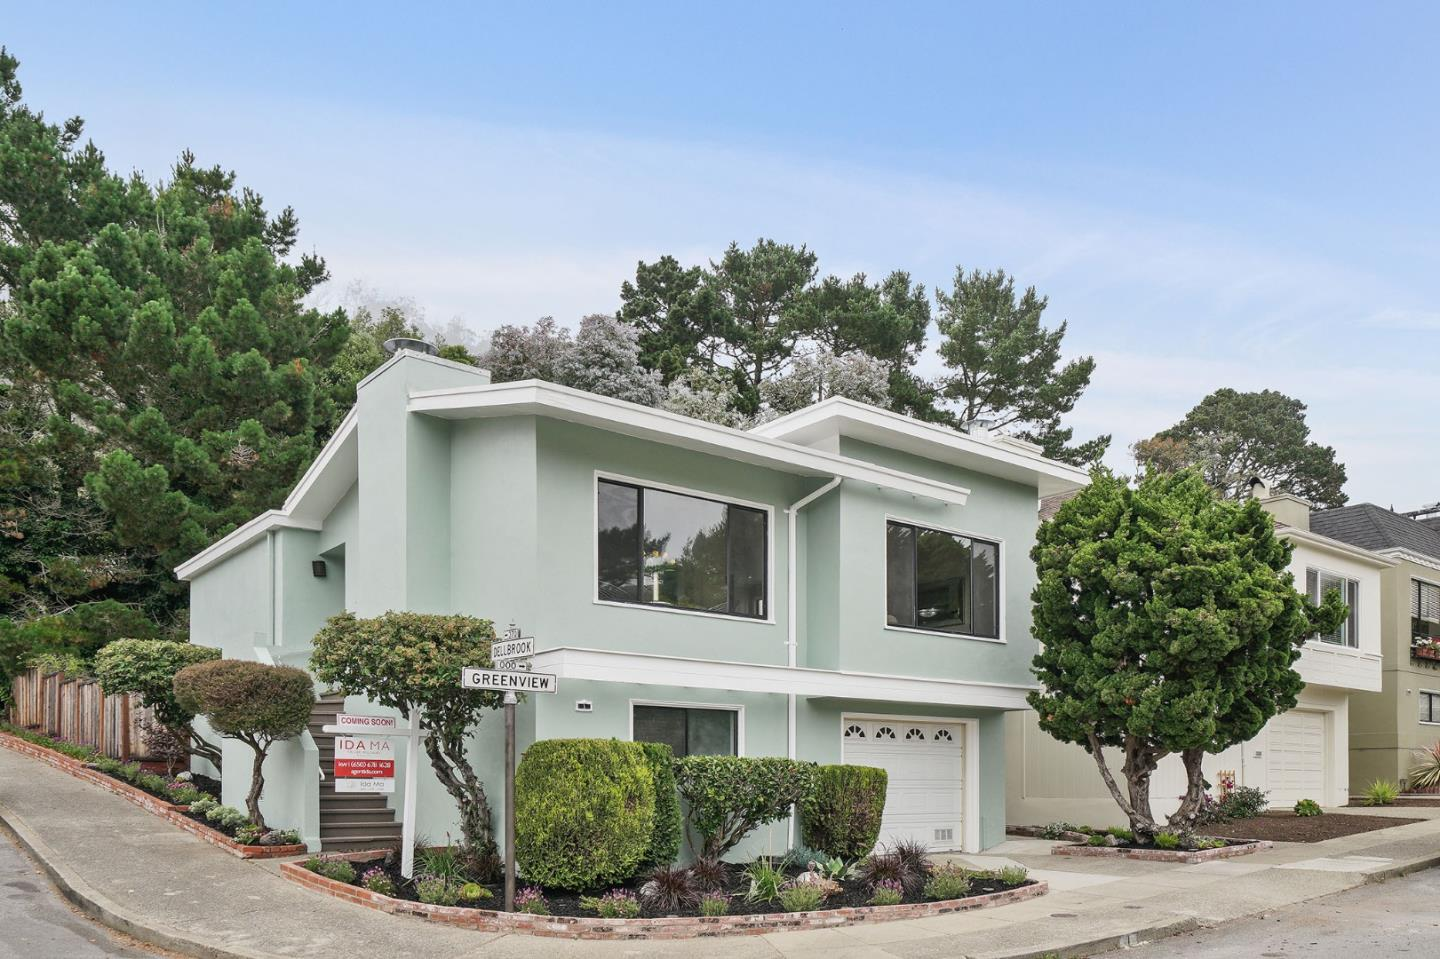 Image for 1 Greenview Court, <br>San Francisco 94131